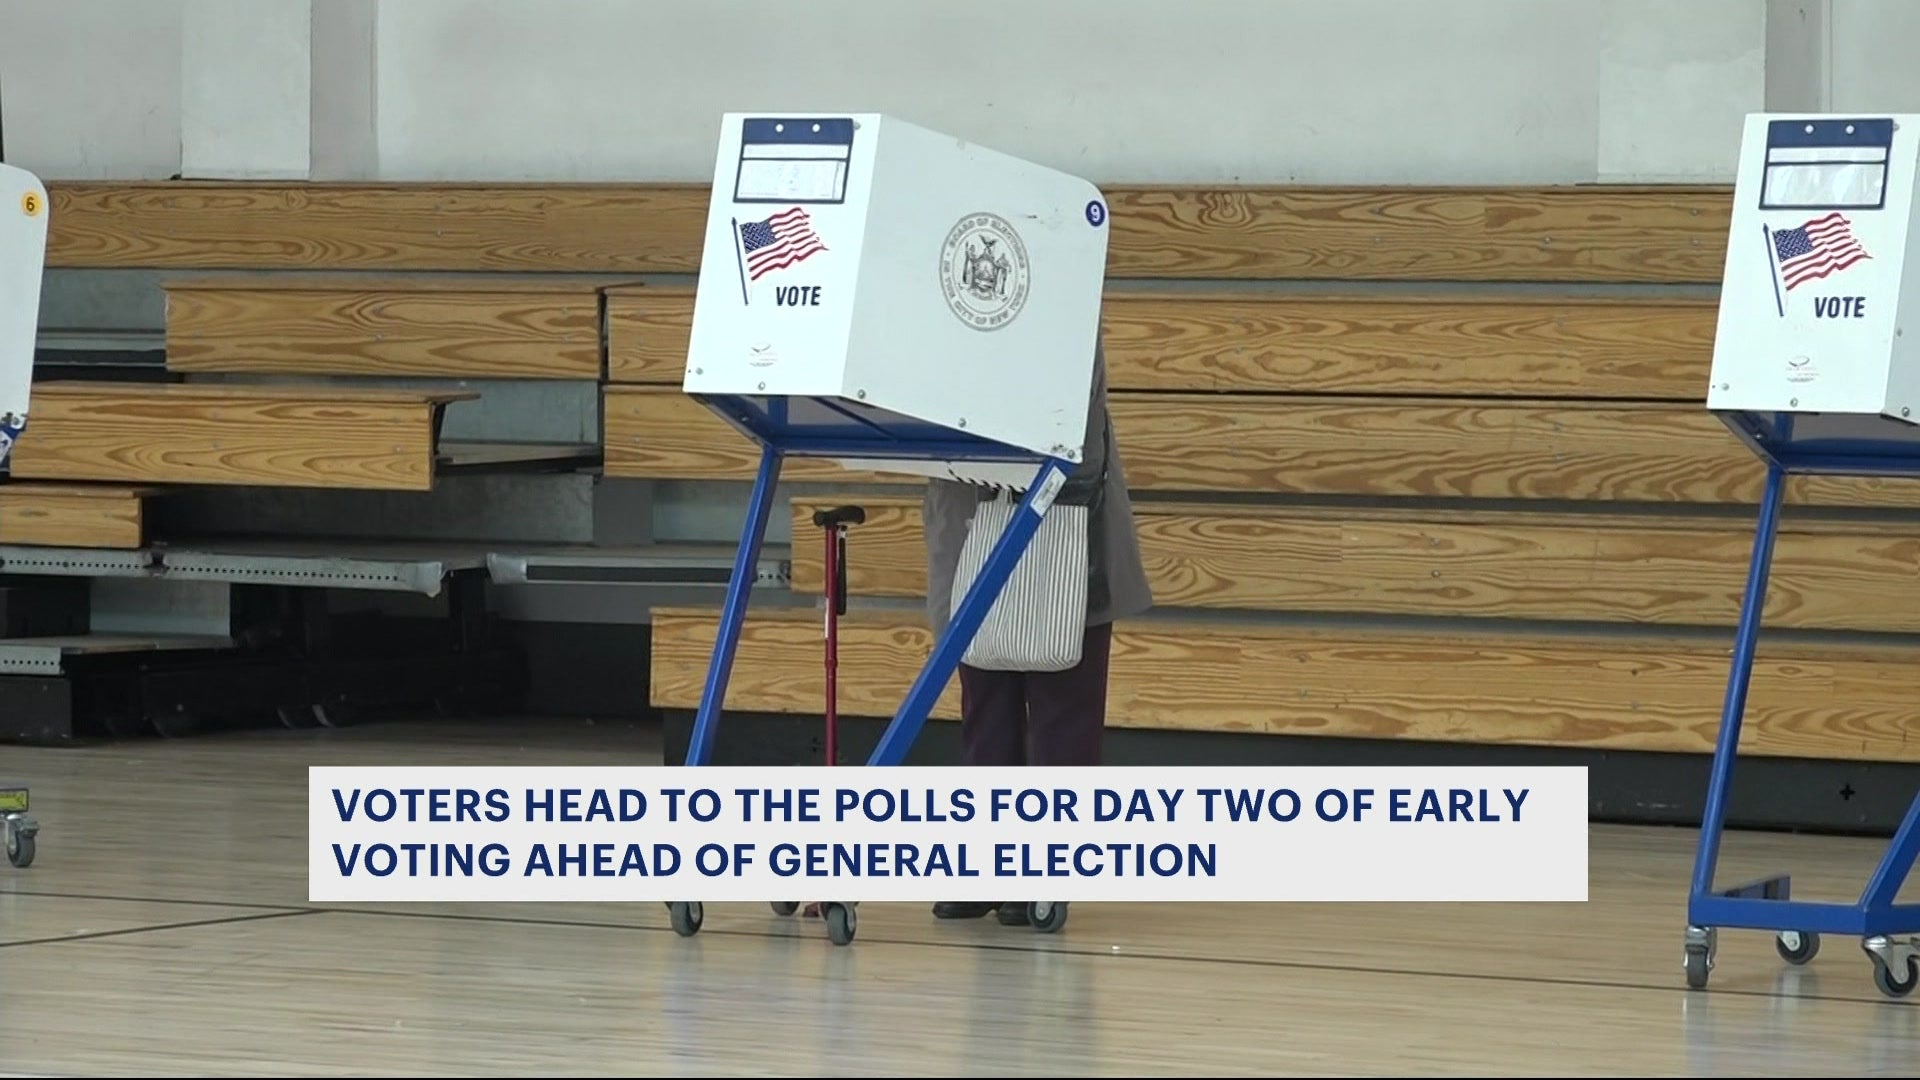 New Yorkers cast their ballots early to beat Election Day crowds